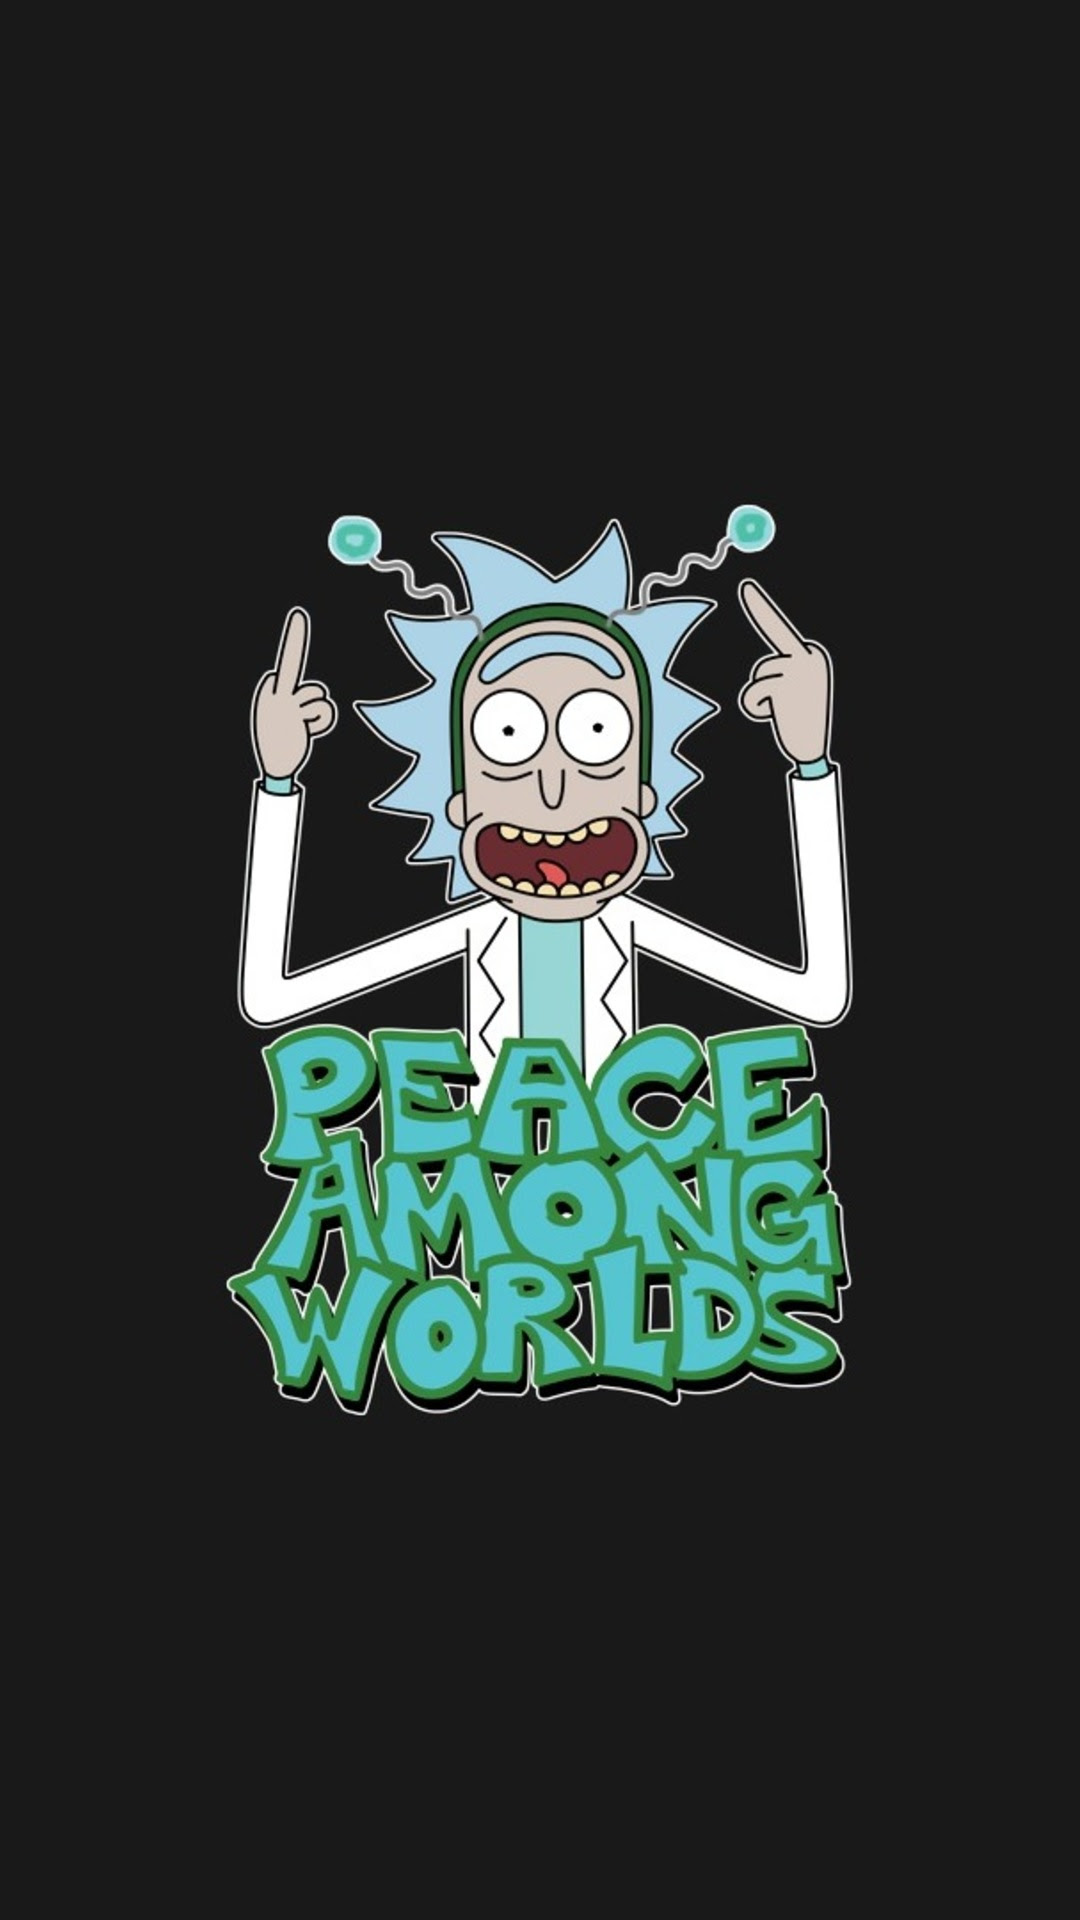 Rick Sanchez Rick And Morty Hd Wallpaper For Mobile Phones